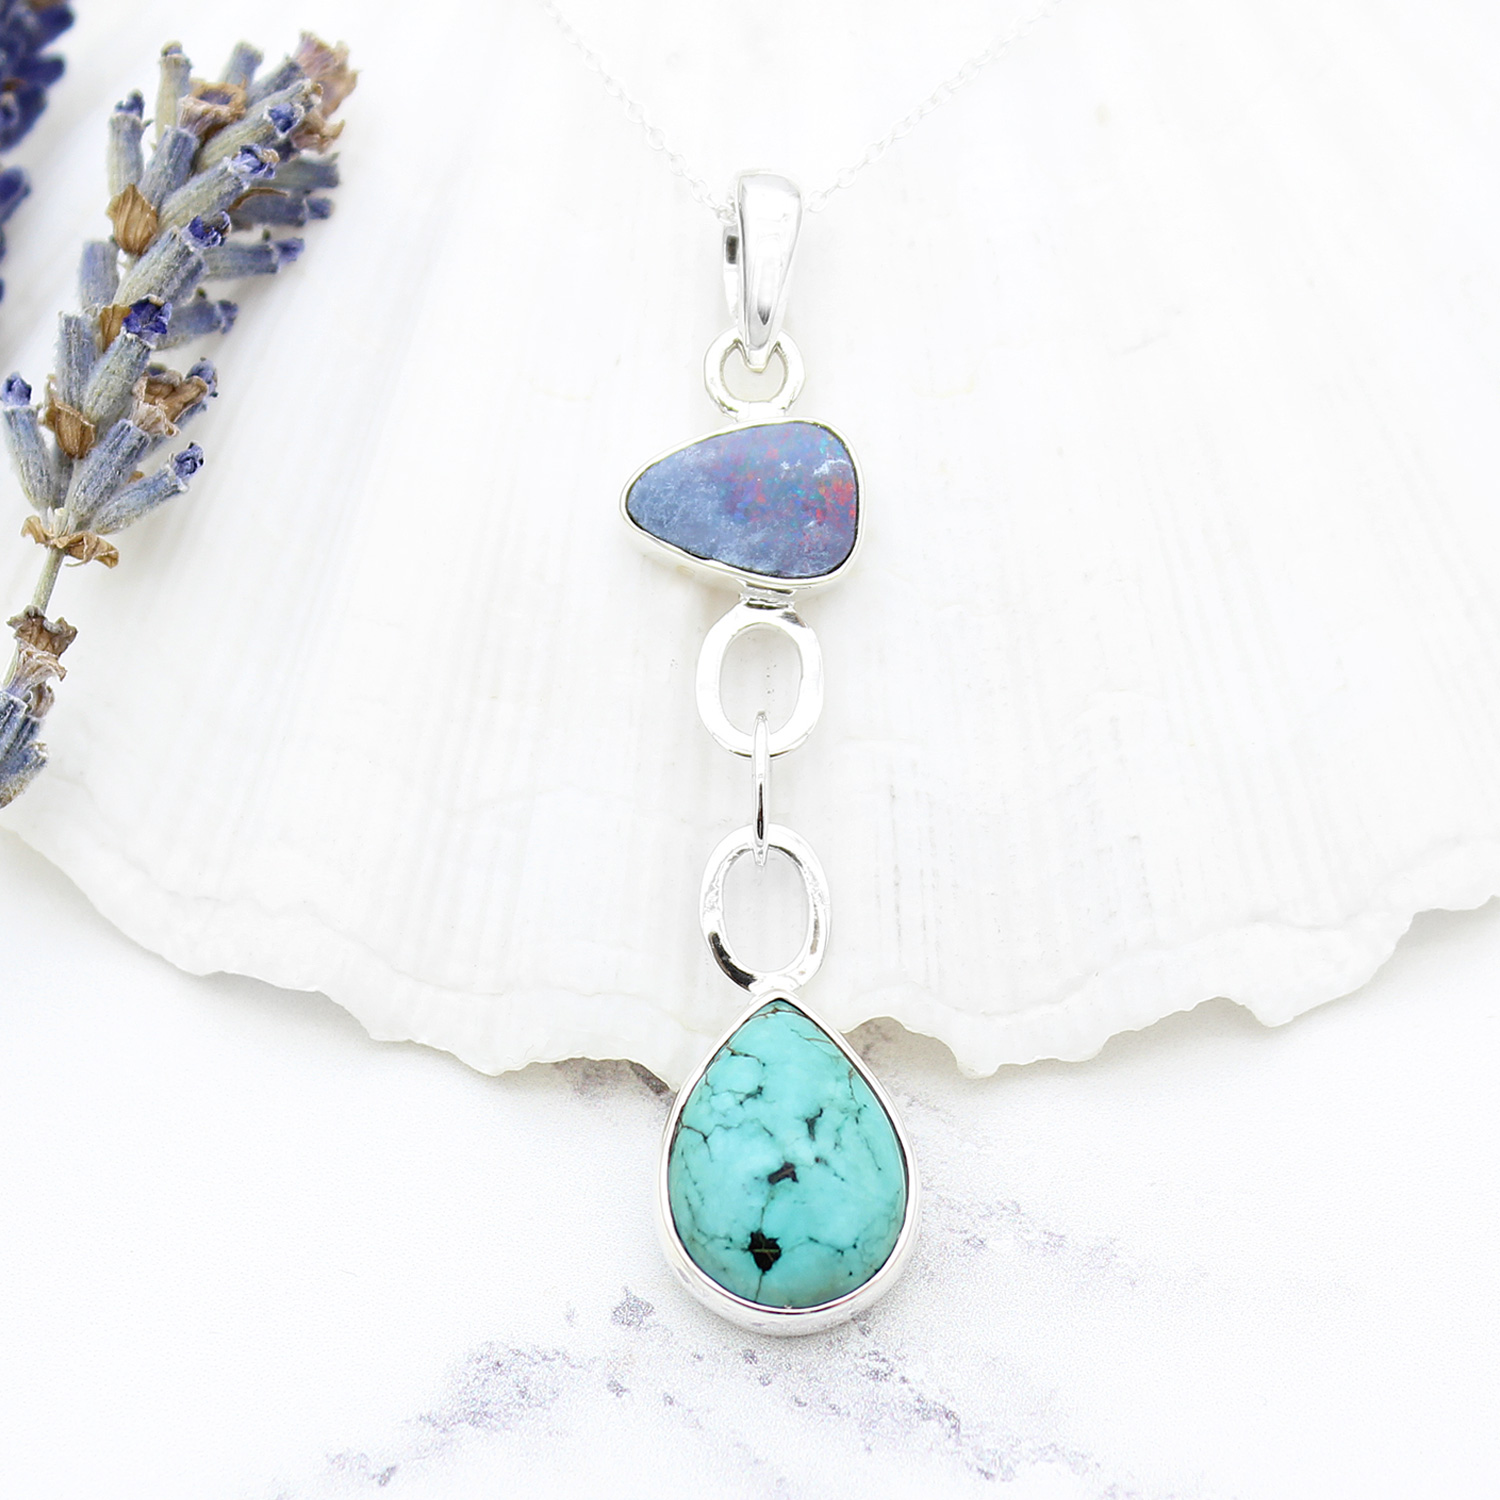 Blue Opal And Tibetan Turquoise Gemstone Sterling Silver Pendant